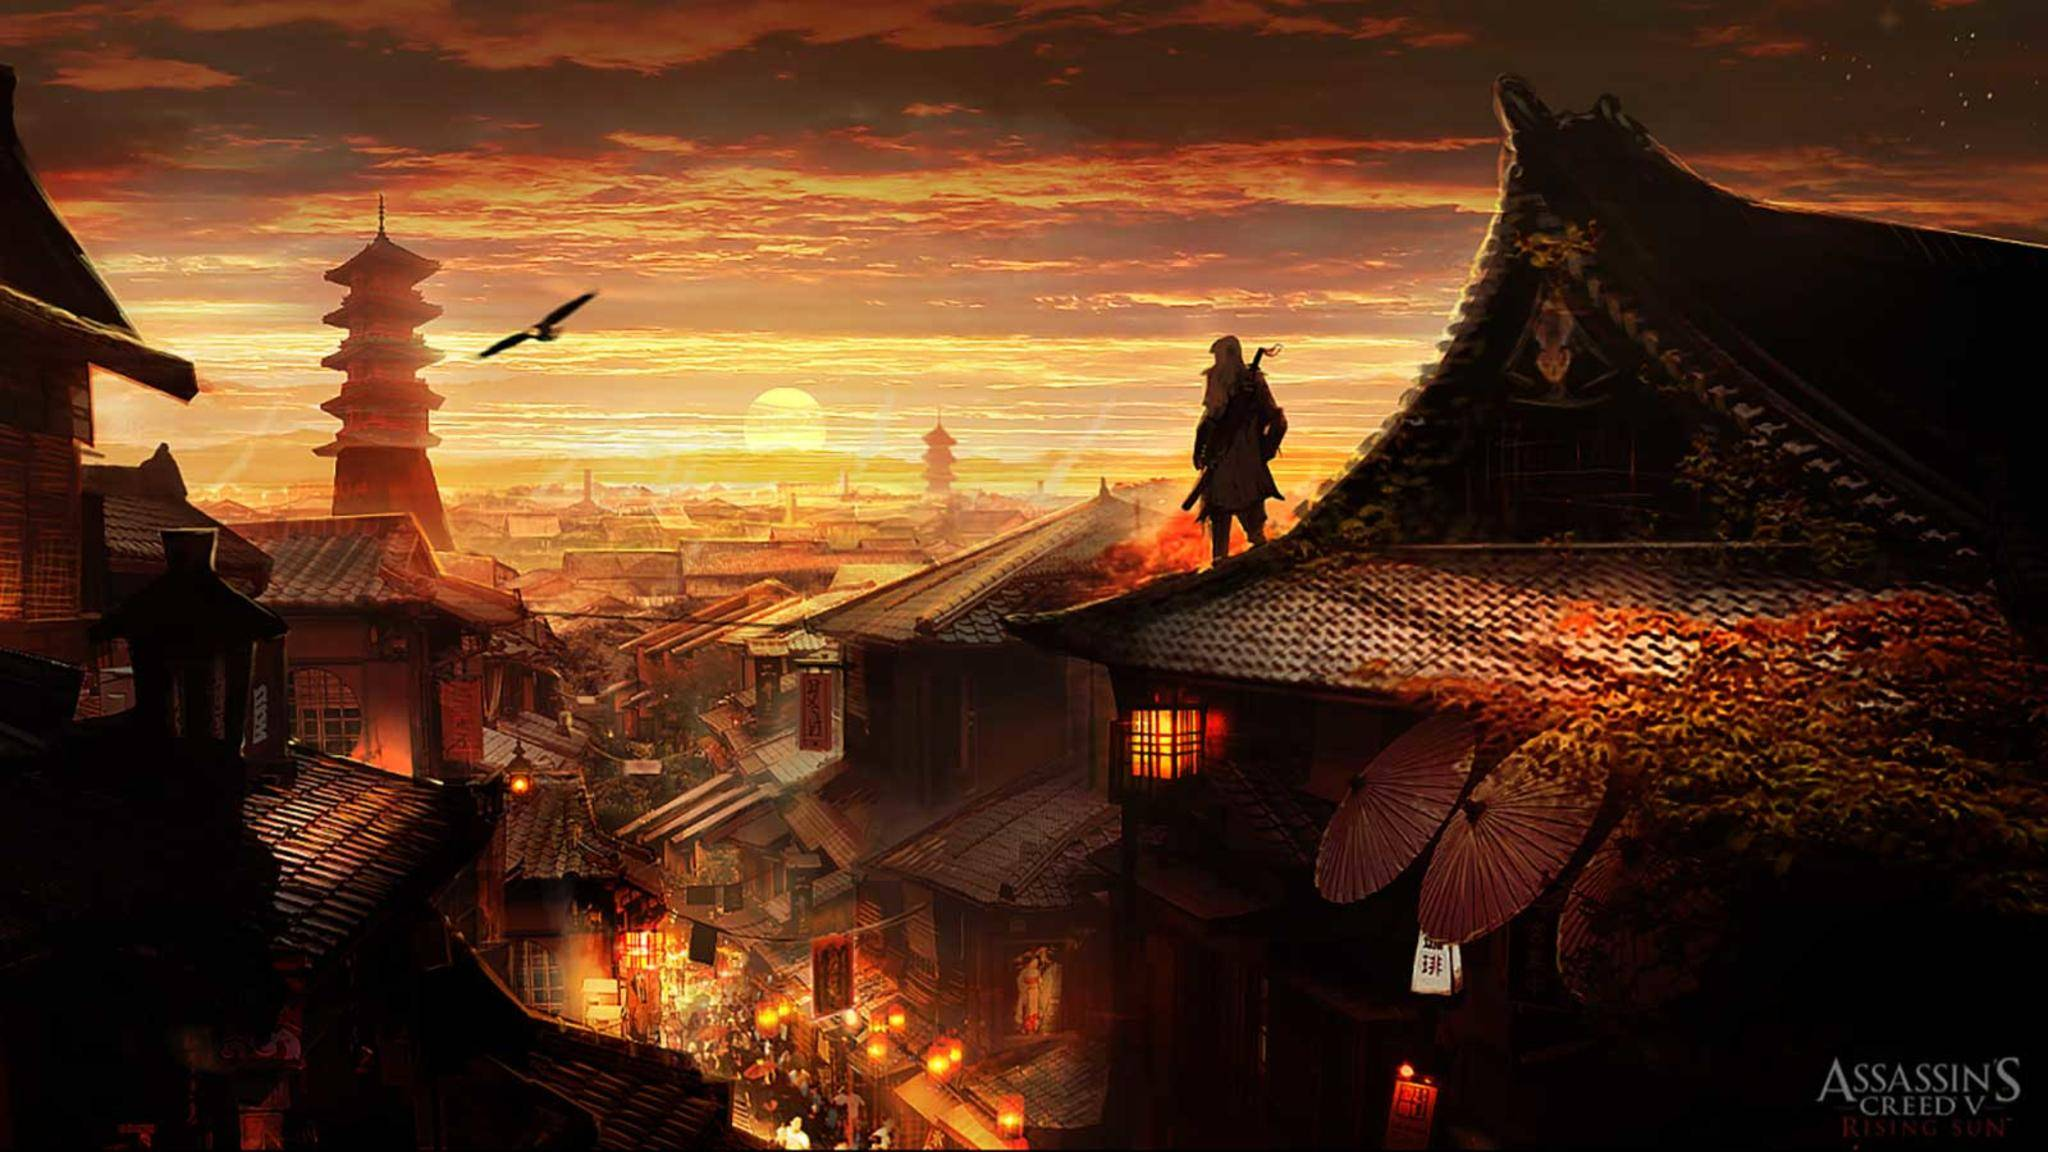 Assassin's Creed: Rising Sun